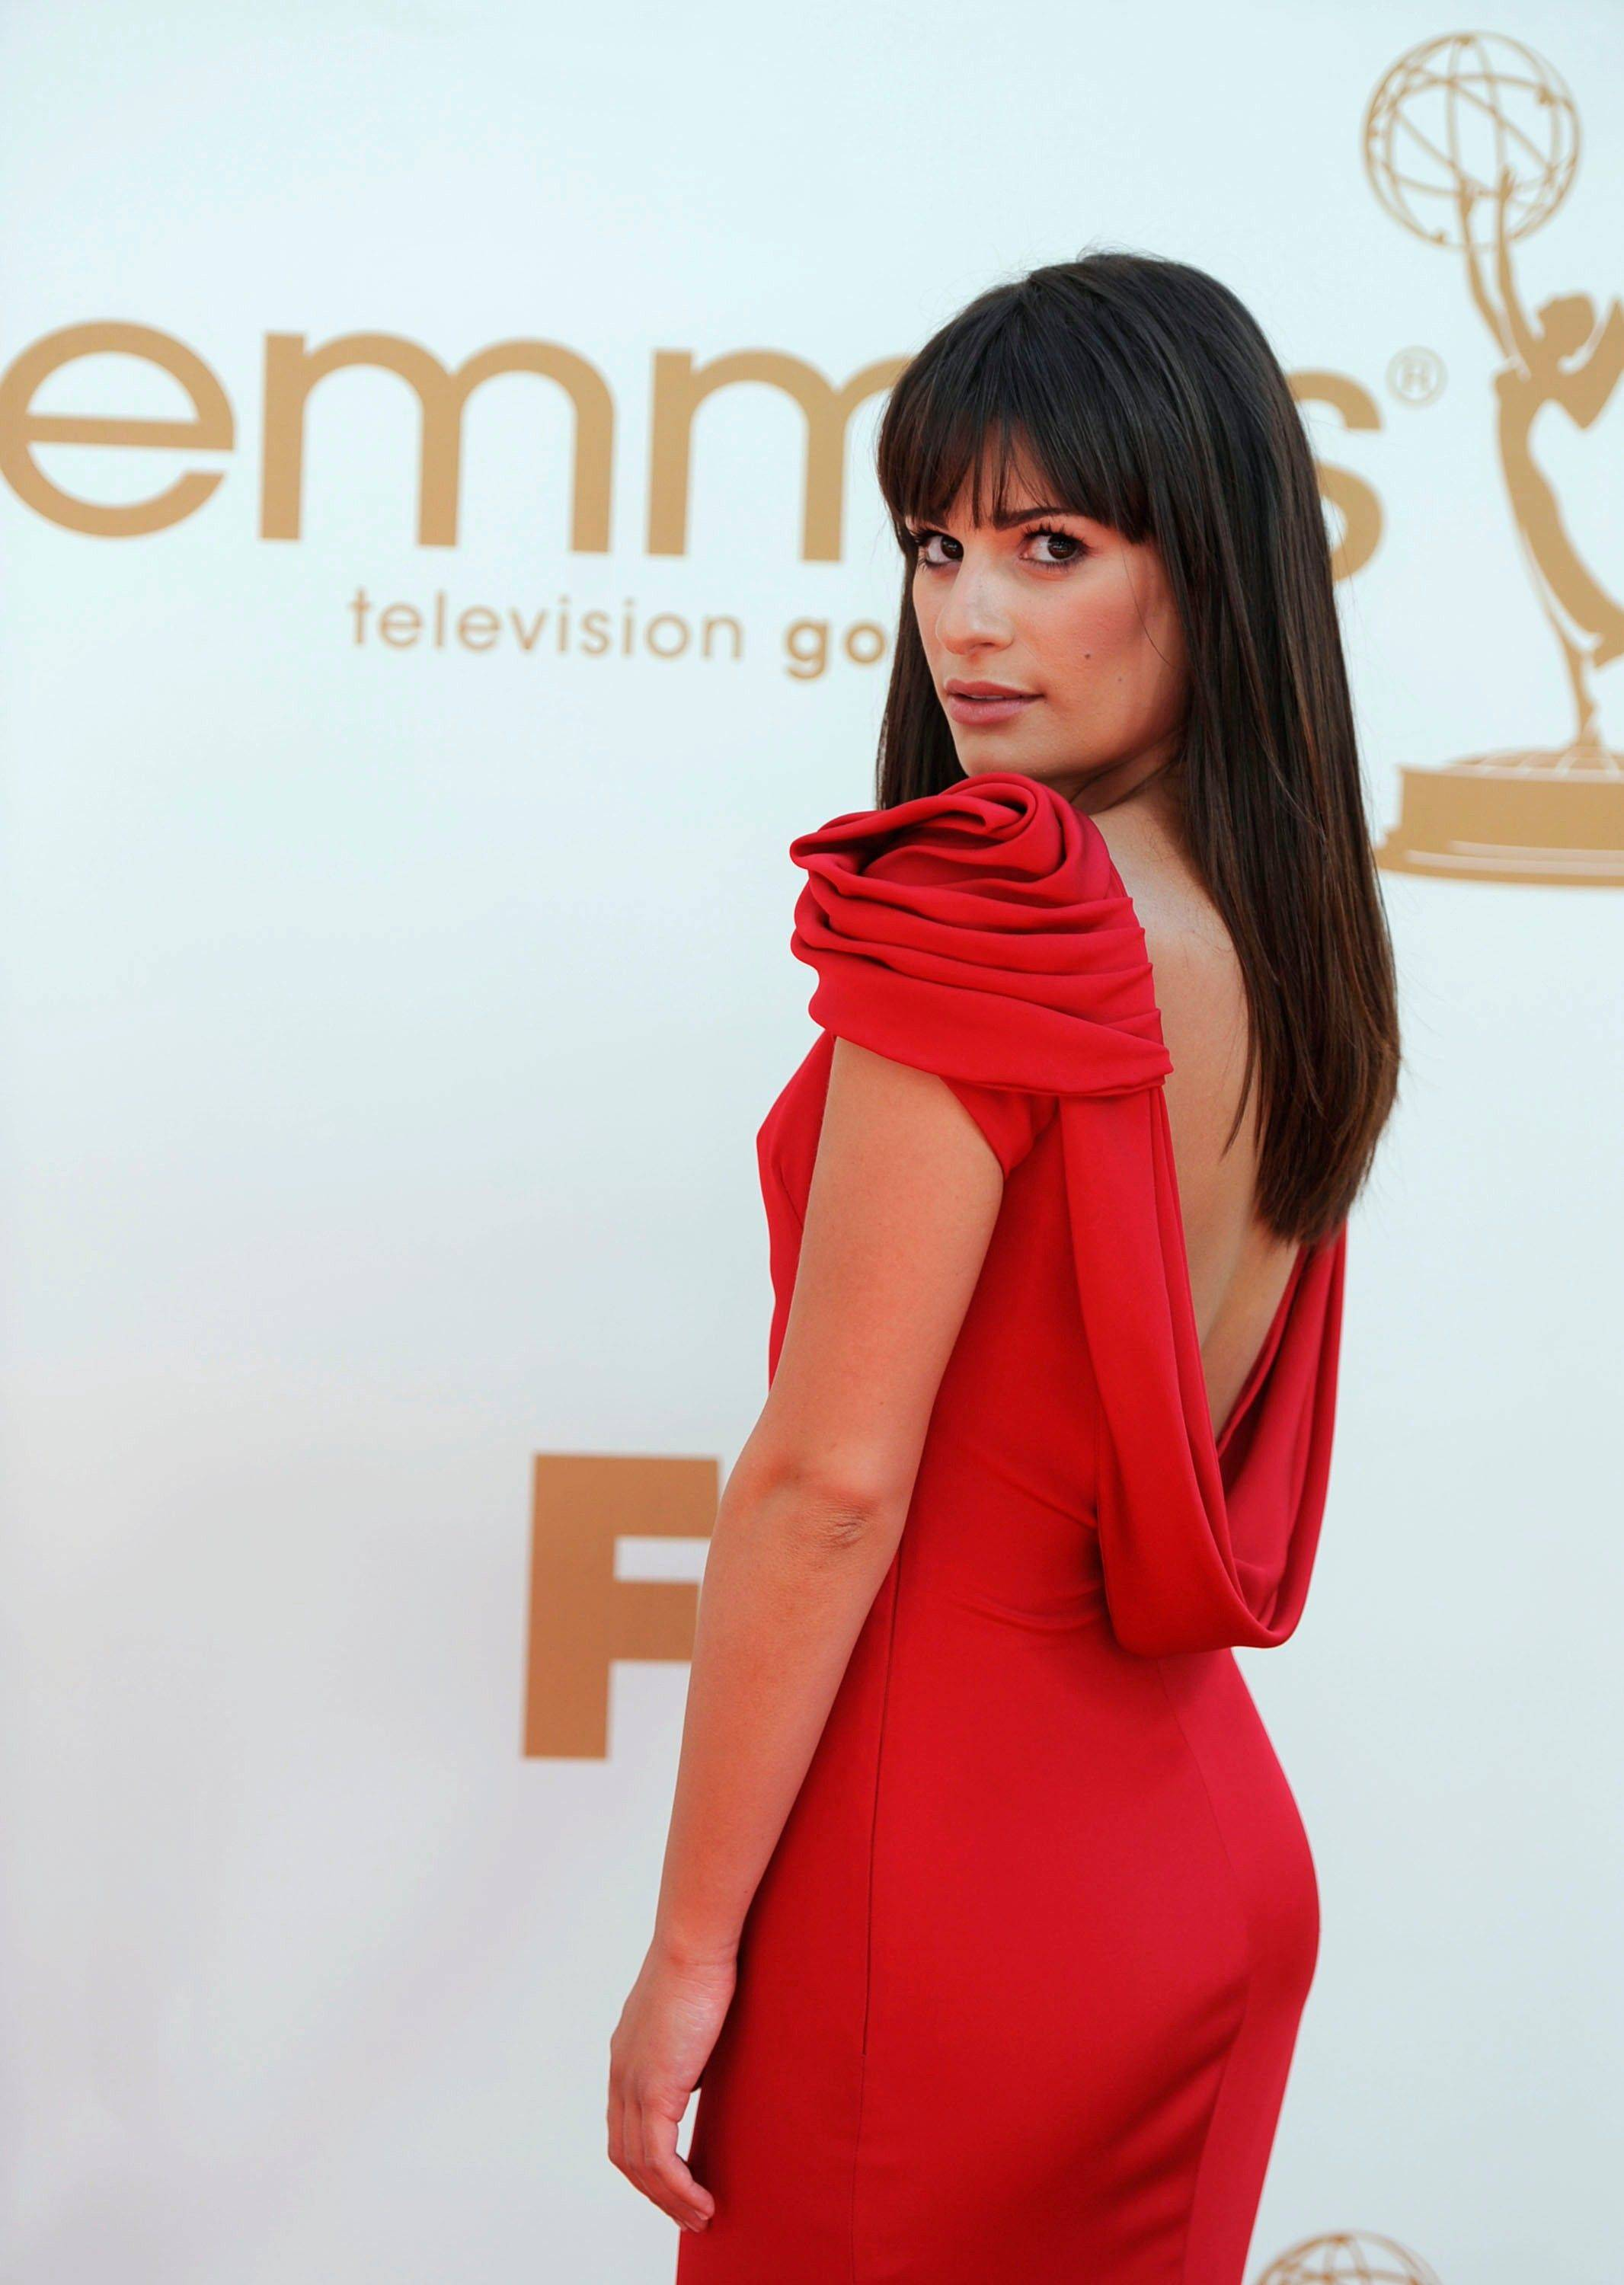 """Glee"" star Lea Michele, in an elegant Marchesa gown, elicits whoops and cheers from the crowd in the bleachers as she makes her way down the red carpet."